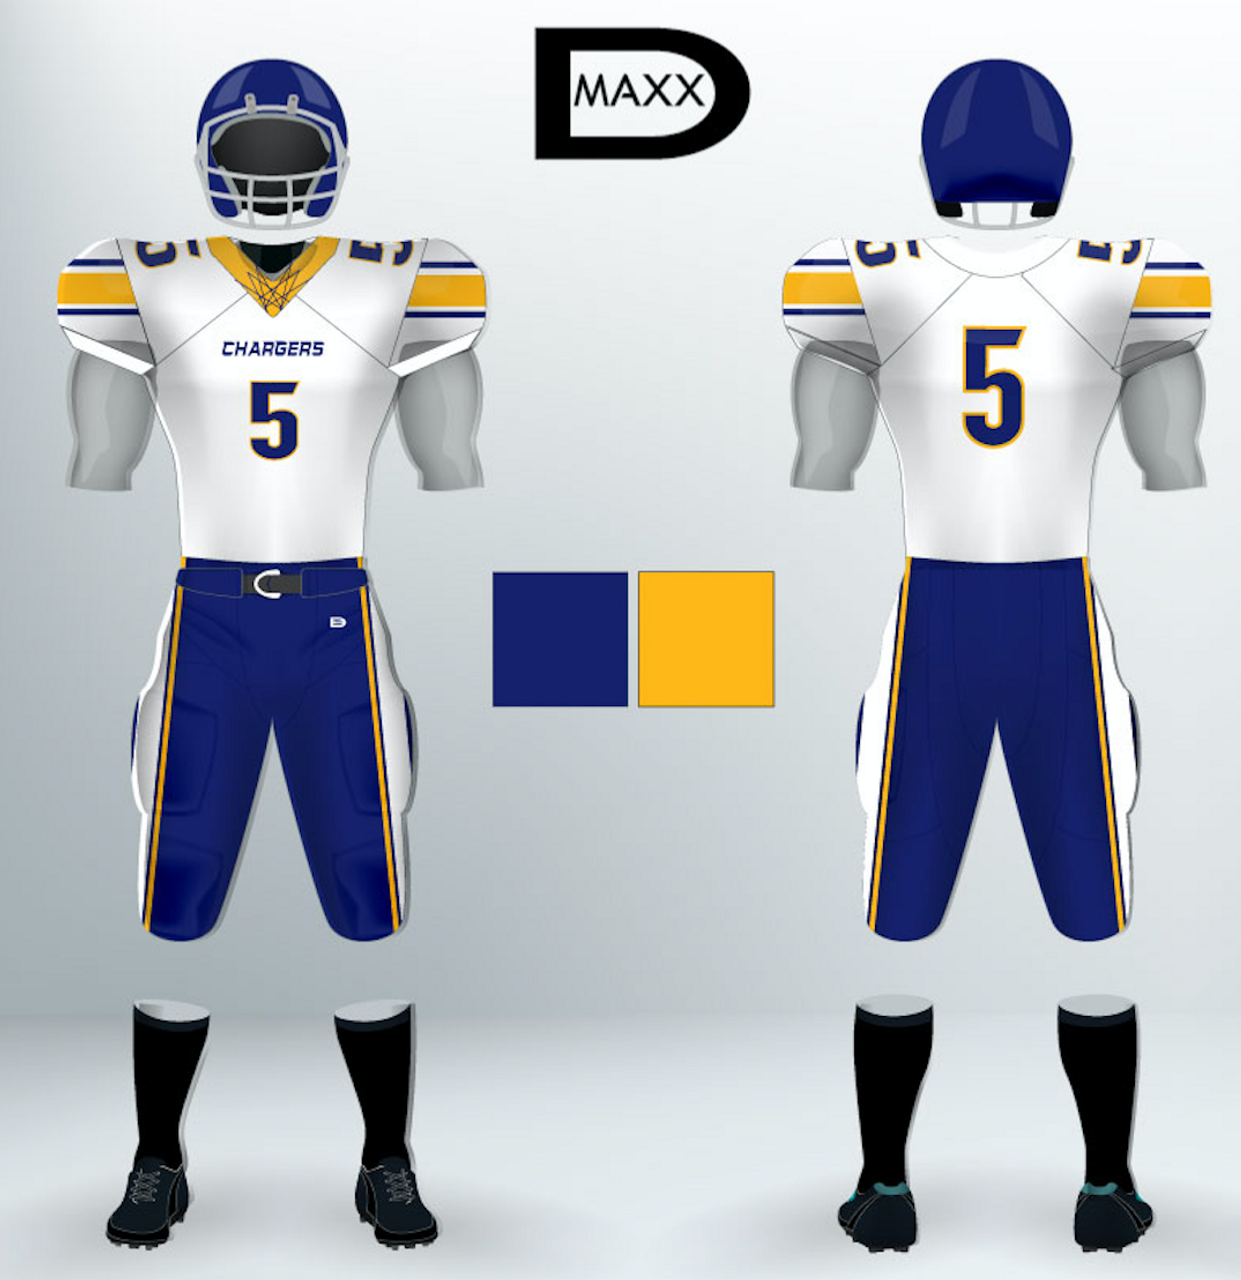 cc0c048039b Sublimated Football Uniforms Order dmaxxsports.com - DmaxxSports